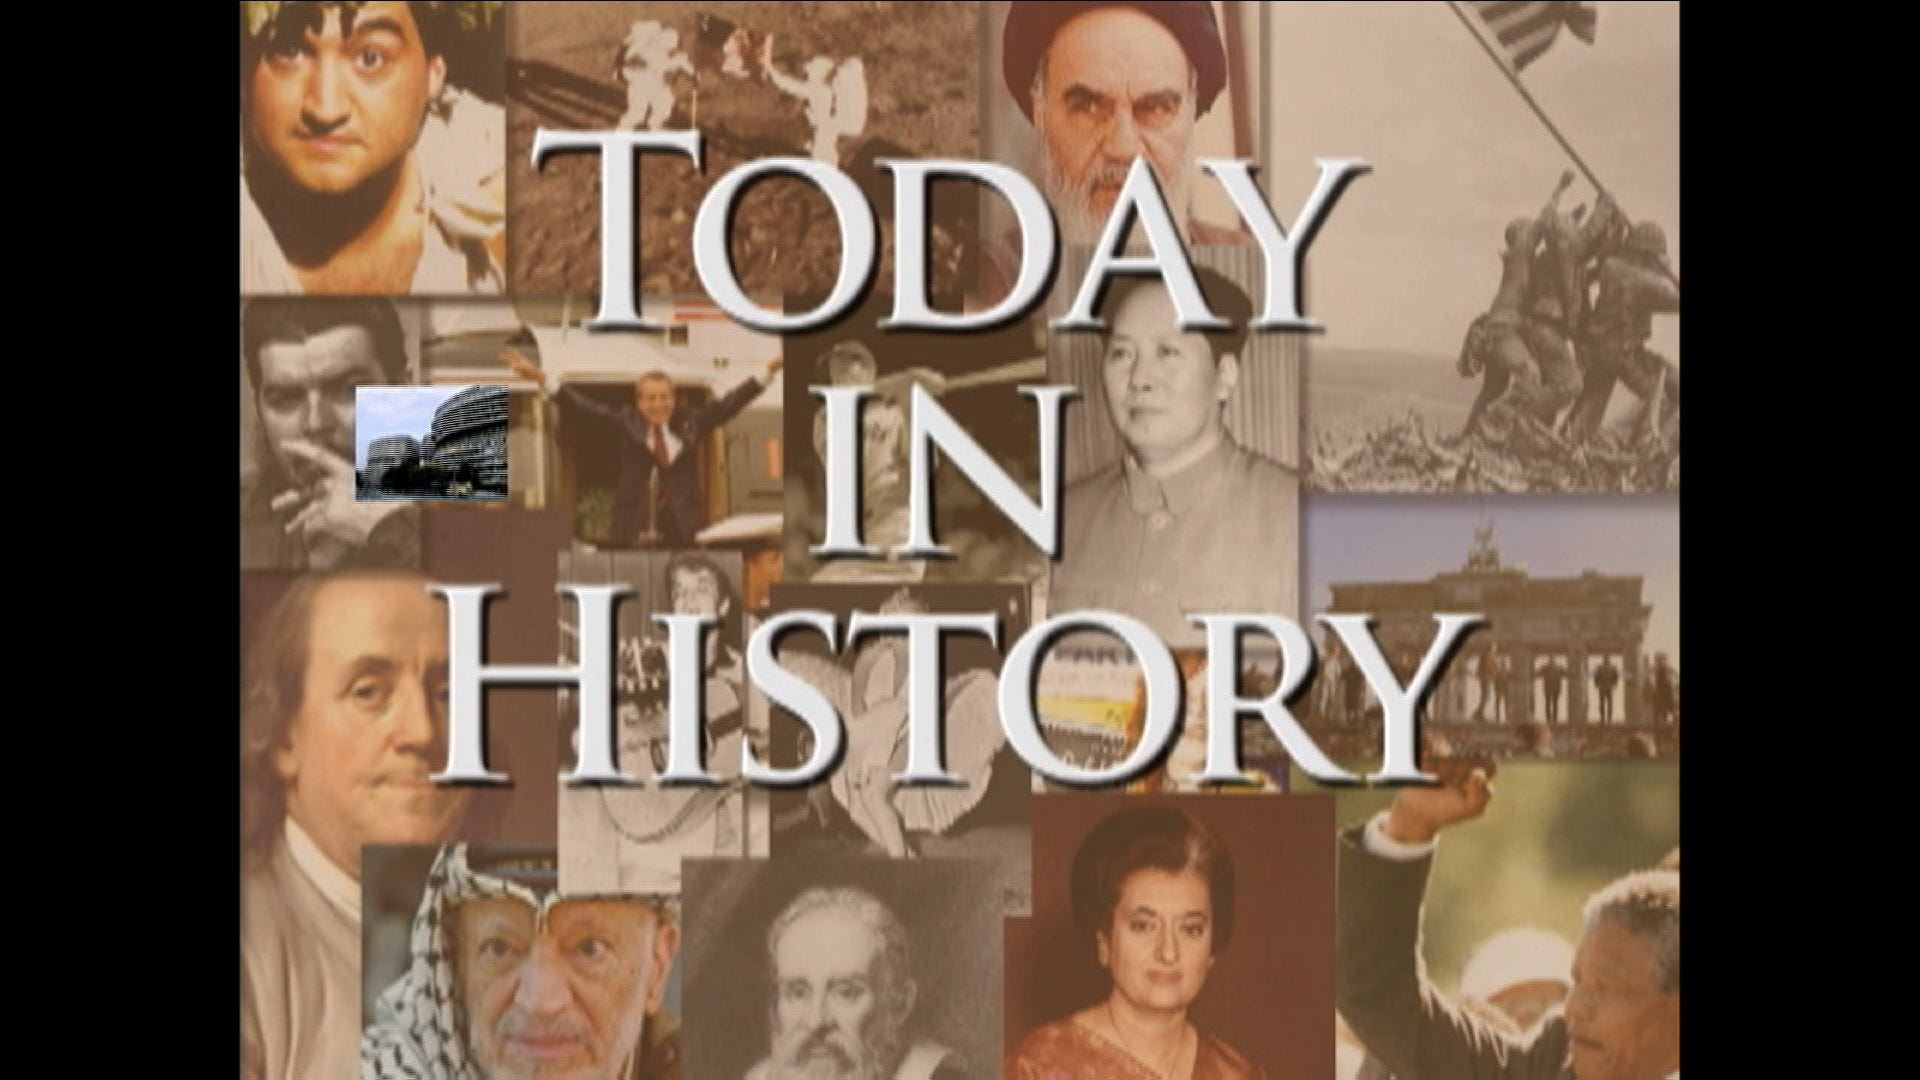 Today in History for June 17th